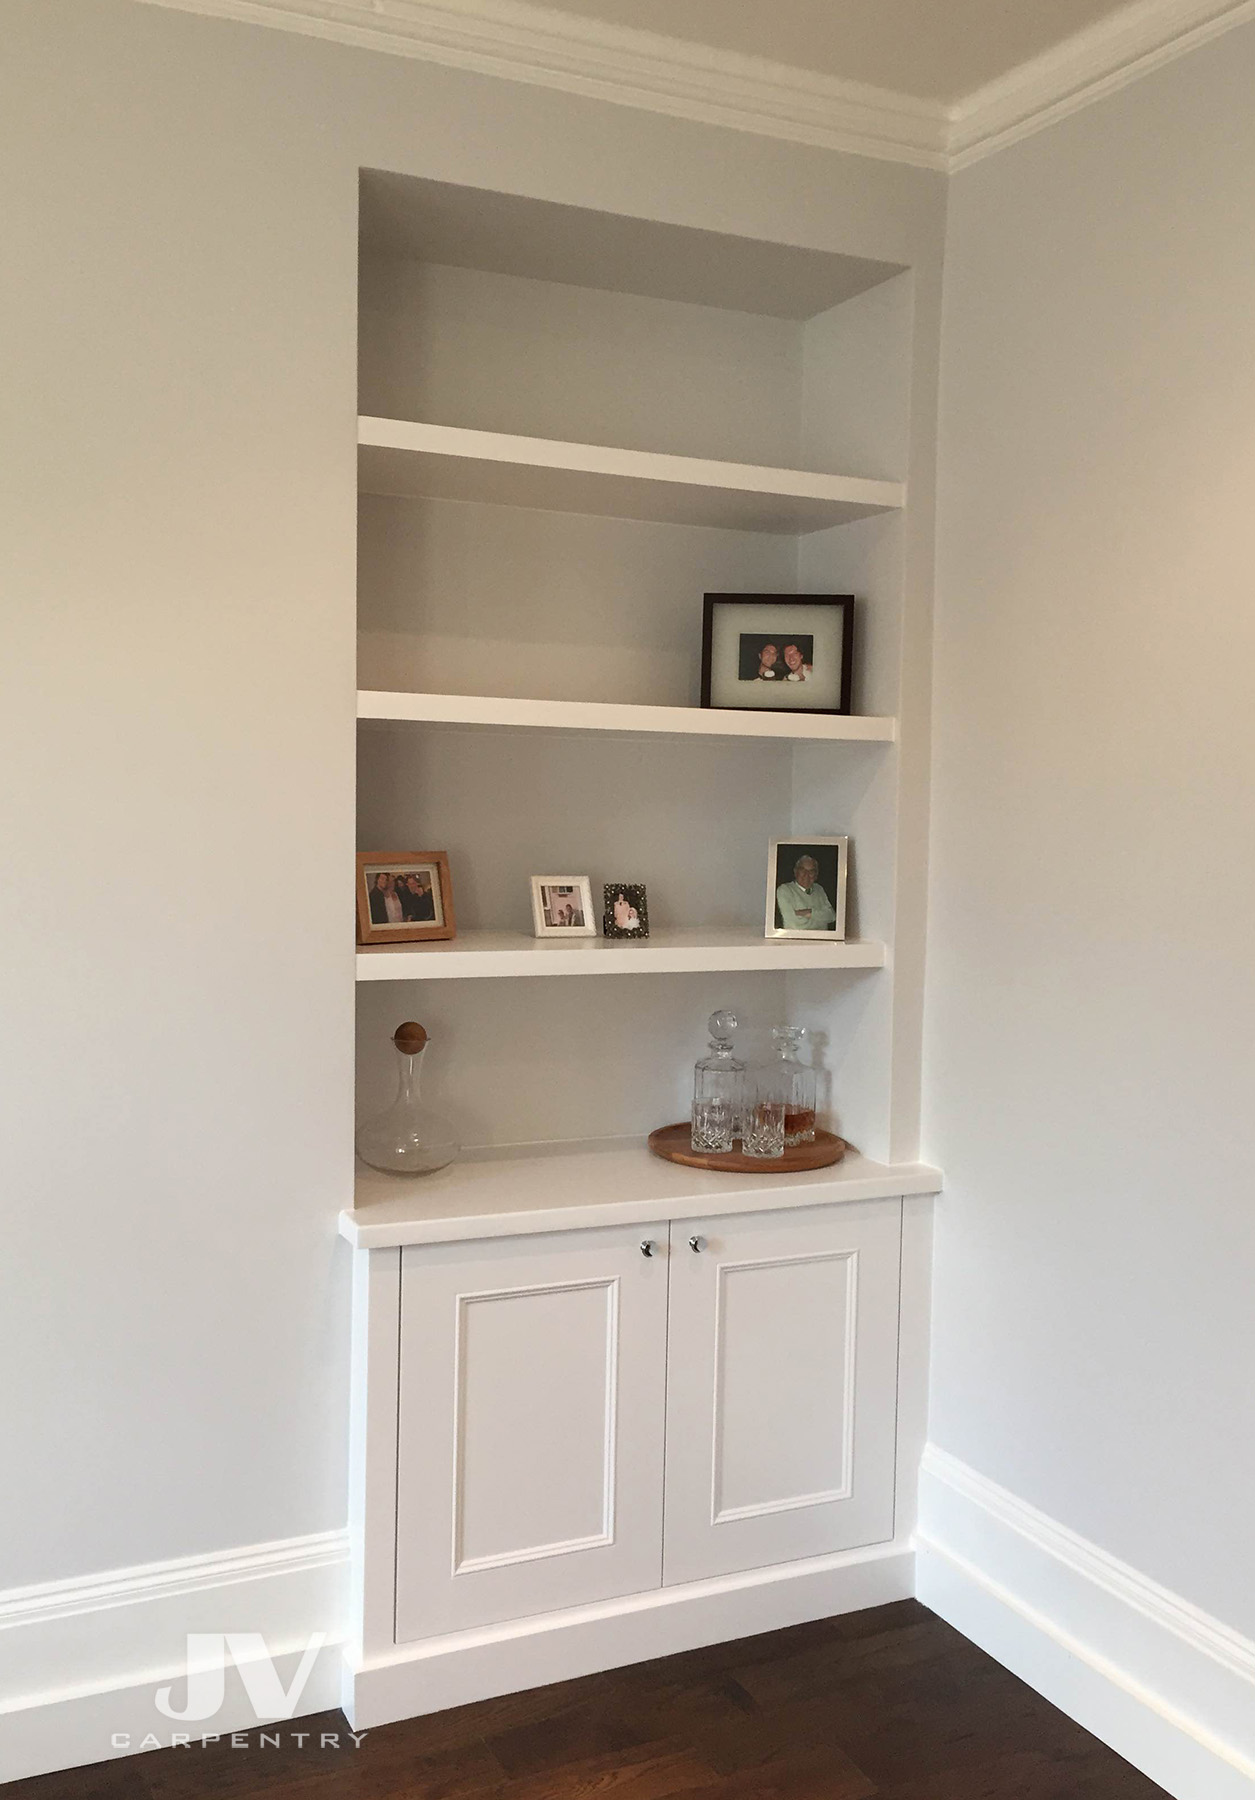 Alcove cabinet with floating shelves